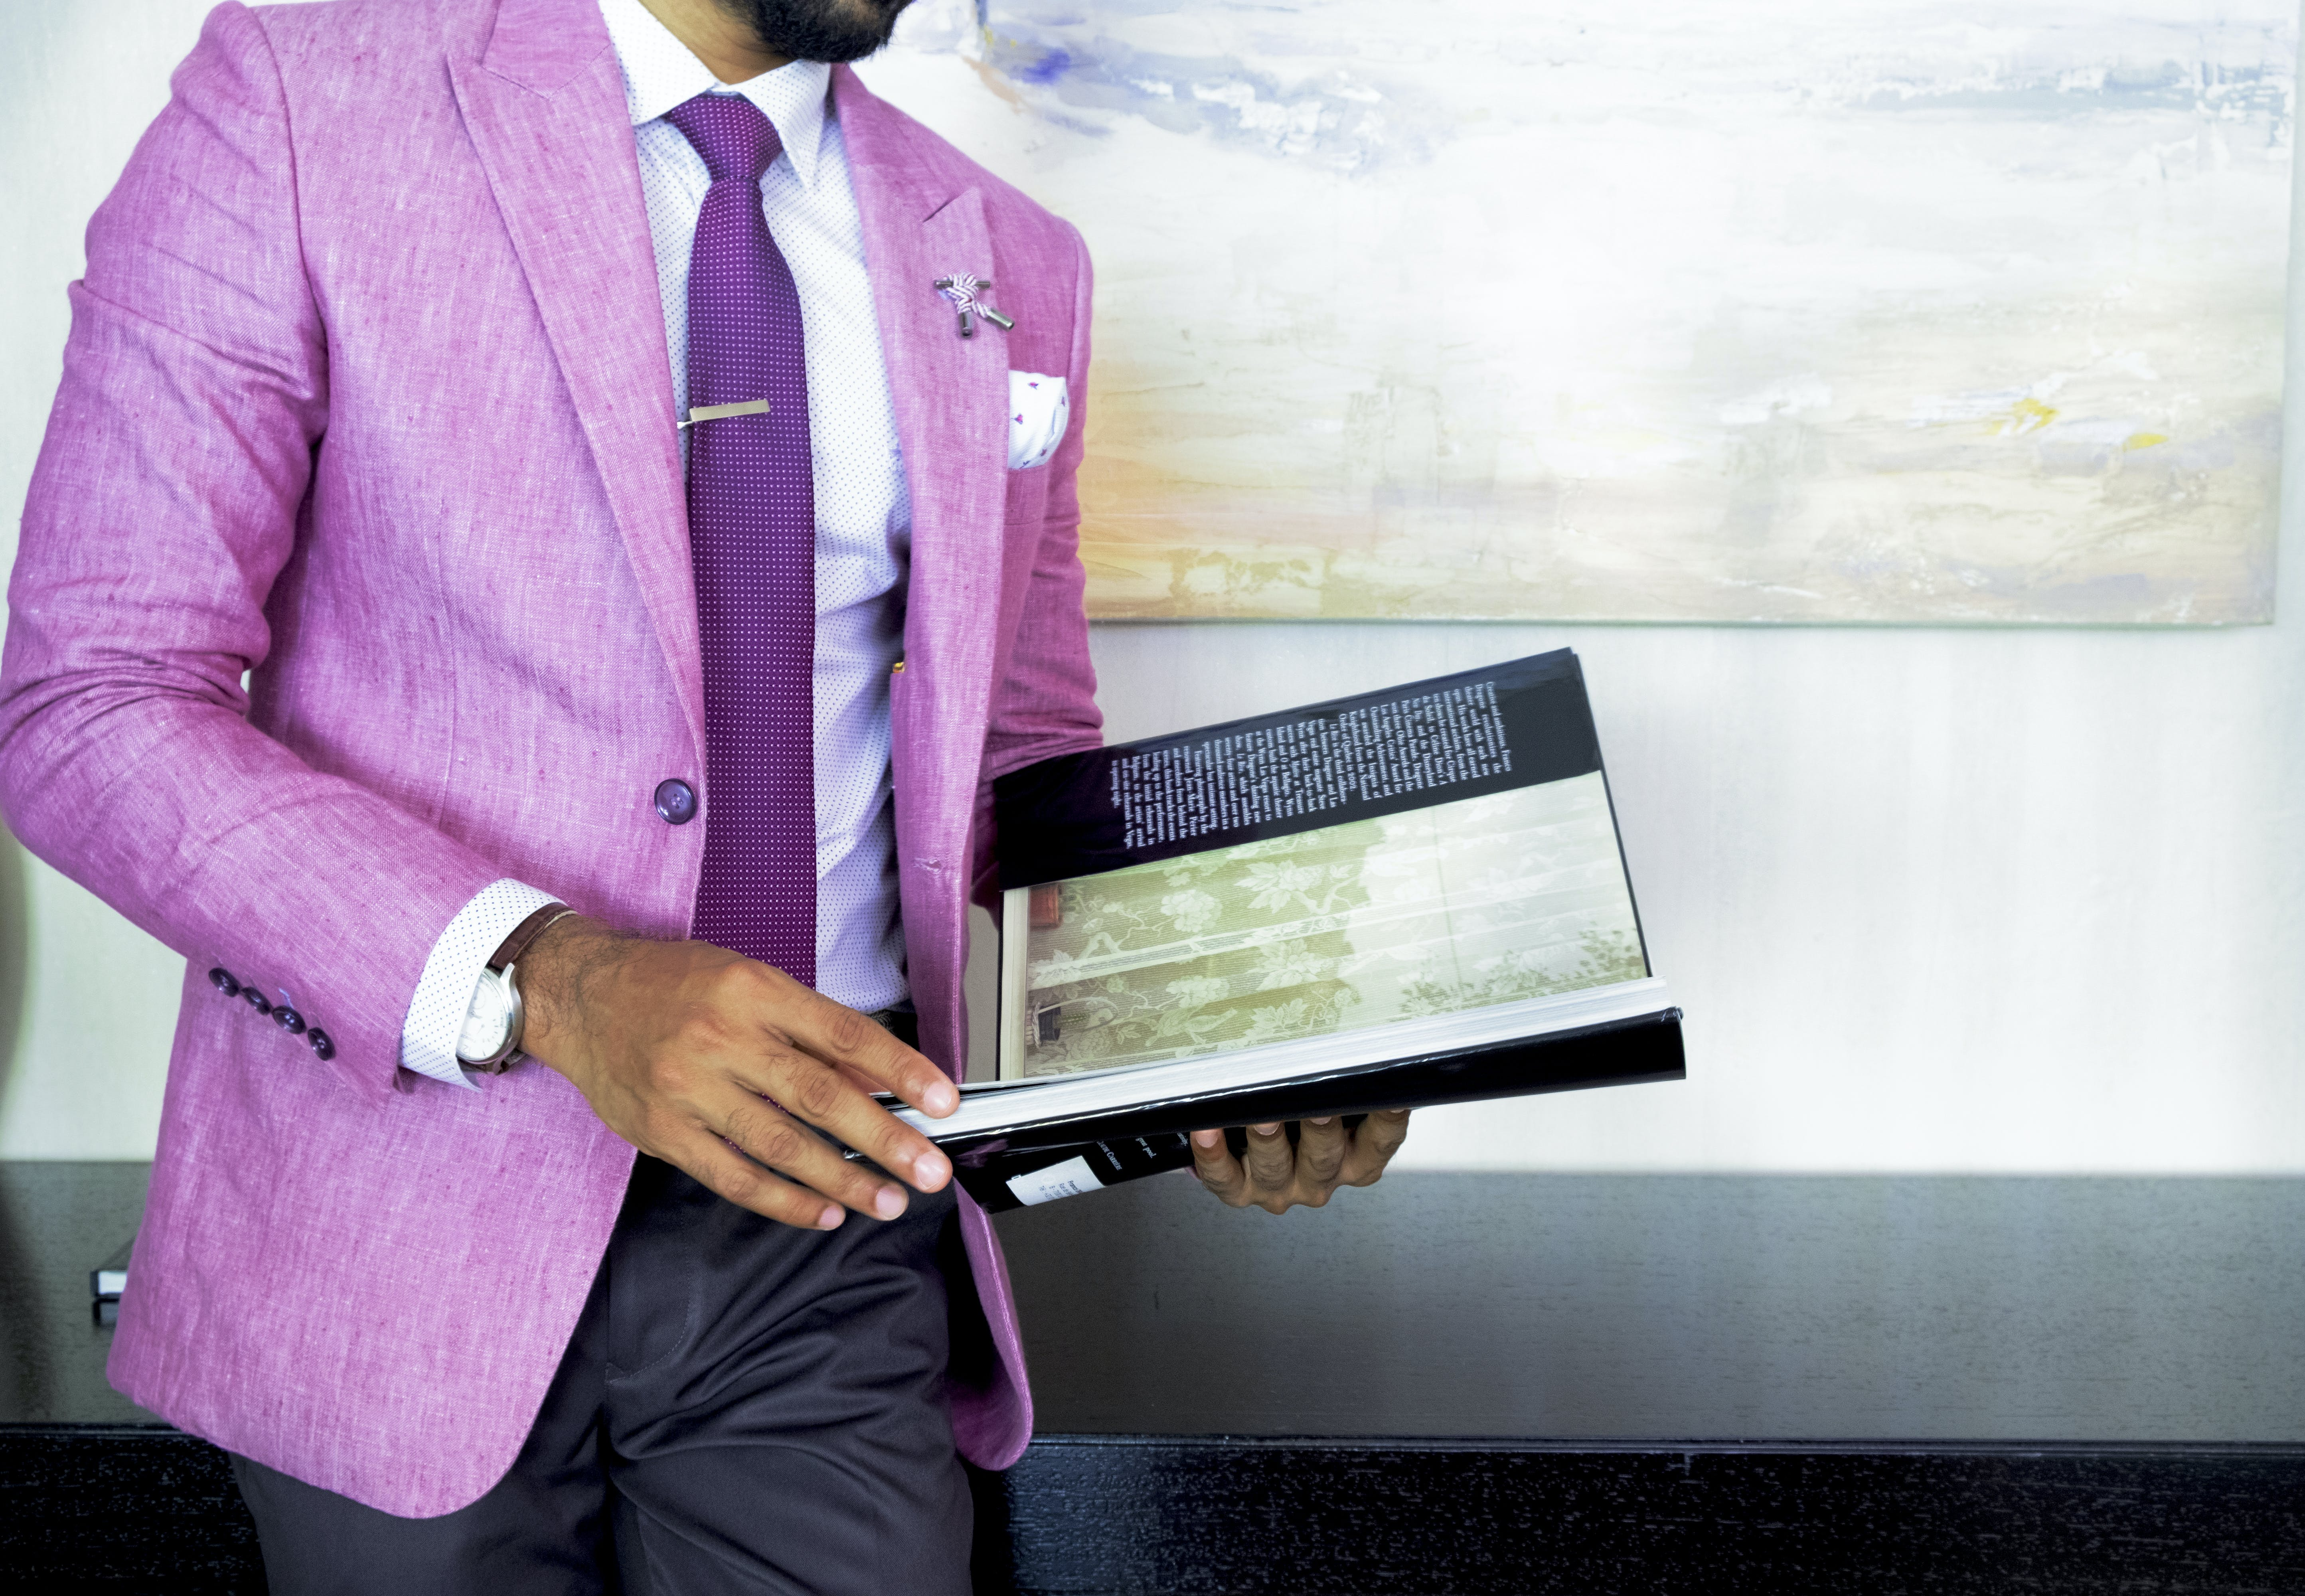 Free stock photo of suit, men, tie, book pages